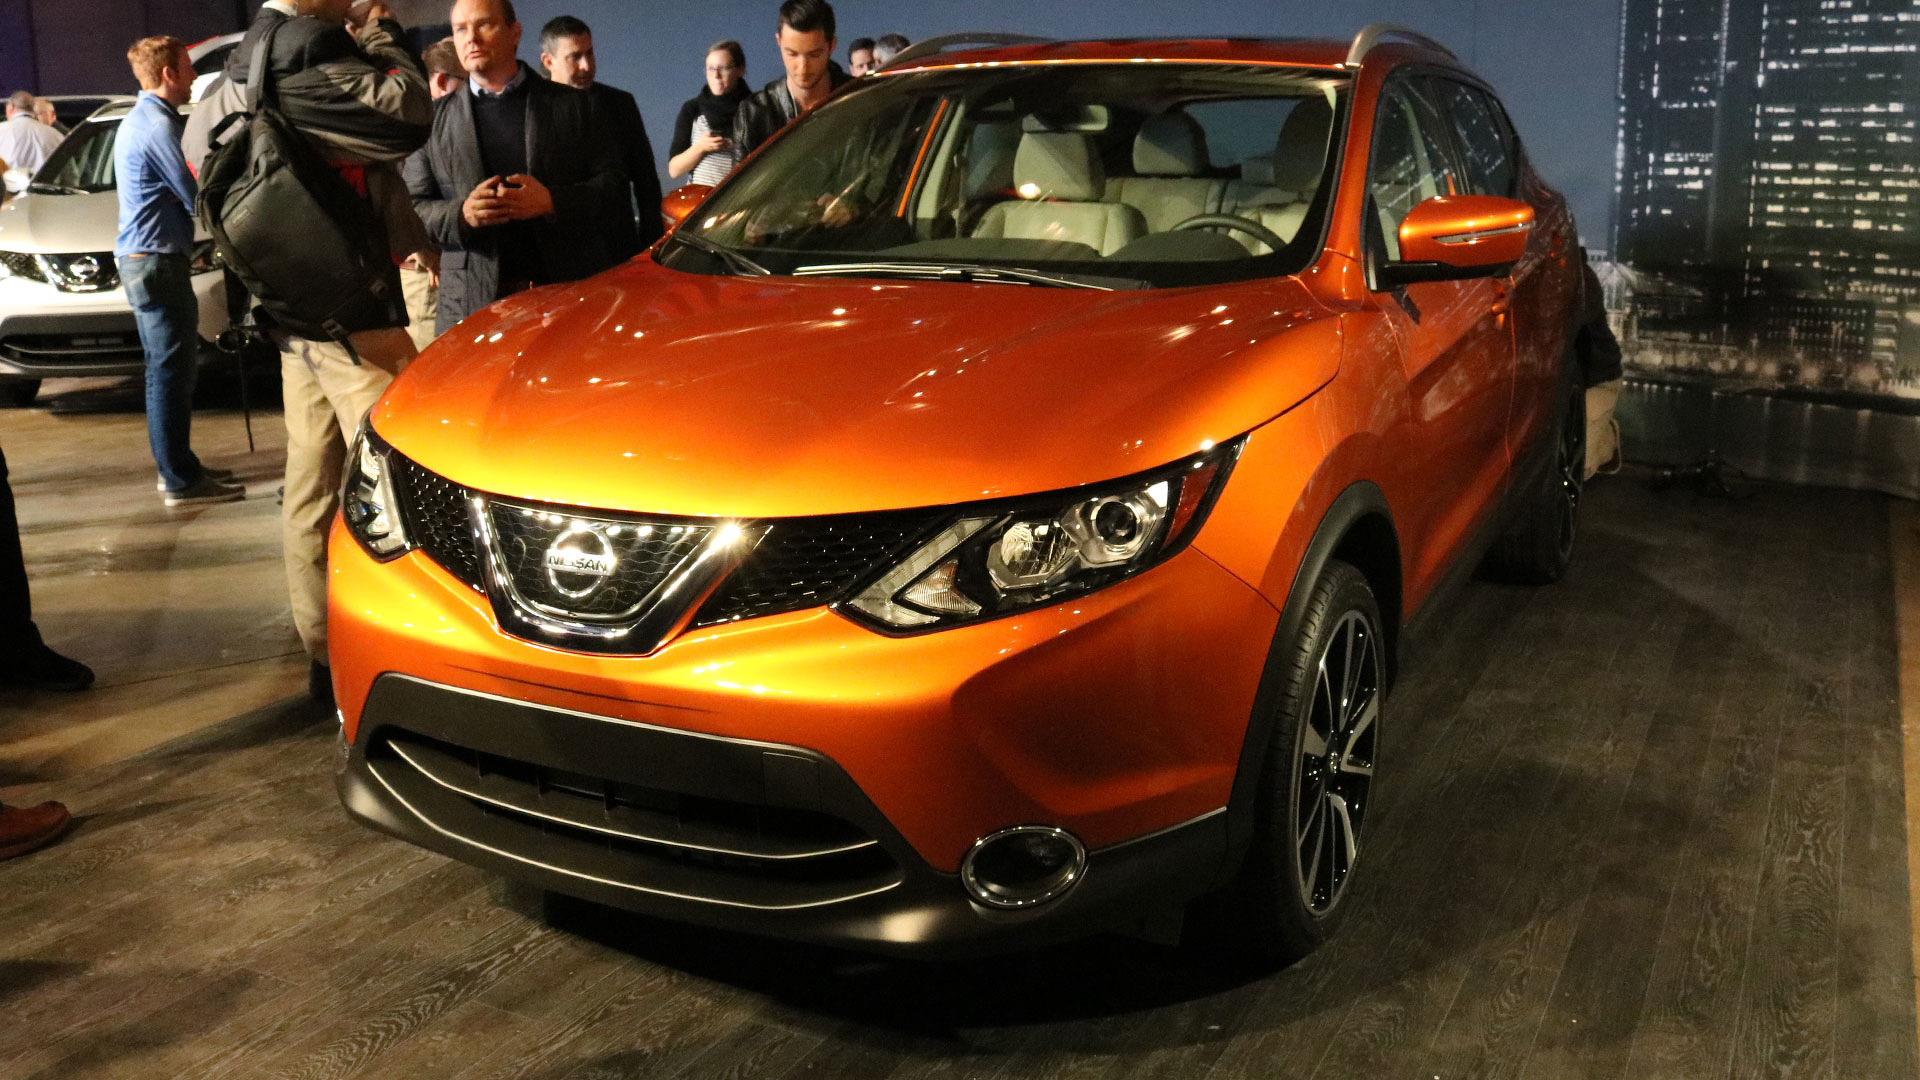 https://icdn-4.motor1.com/images/mgl/MbQn8/s1/2017-nissan-rogue-sport.jpg